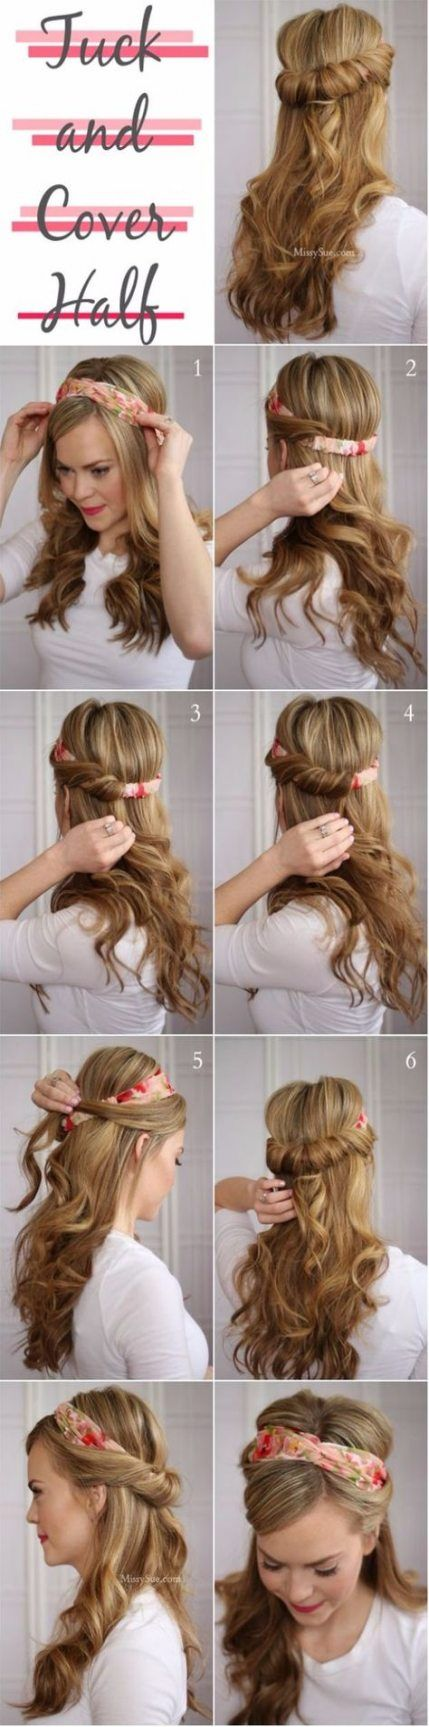 Hair Styles Easy Half Up Top Knot 65 Ideas